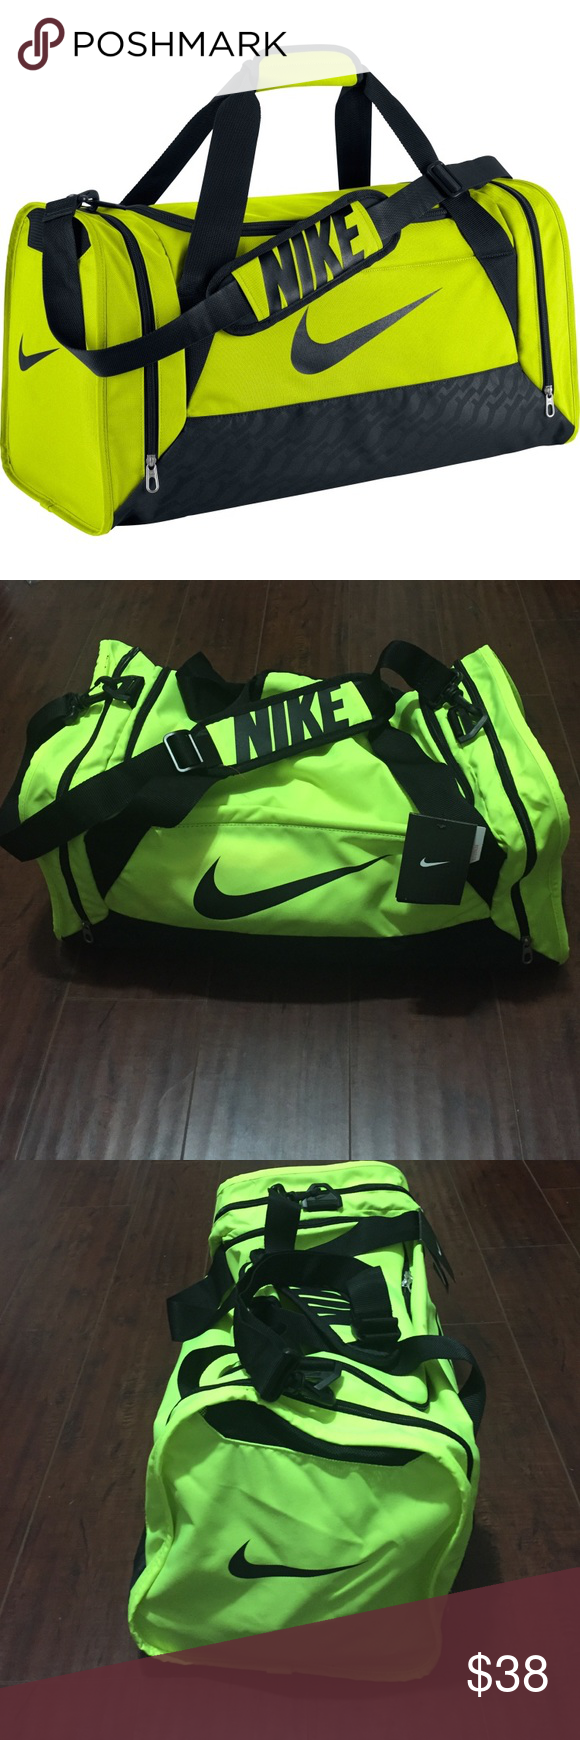 2f889d6b9a NIKE lime green gym  duffle bag New with tags. Size medium. Nike Bags  Travel Bags